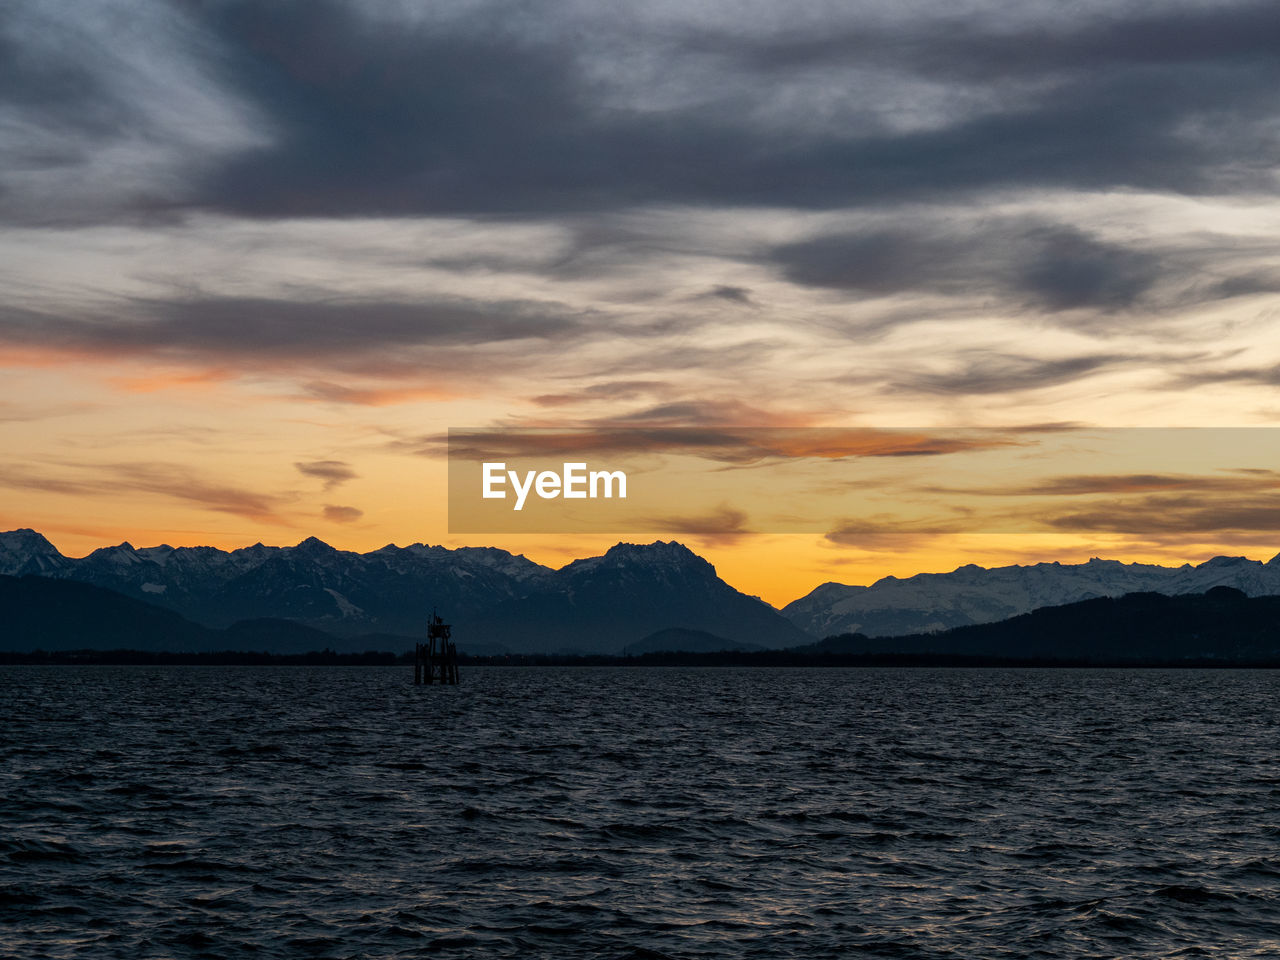 sunset, sky, cloud - sky, beauty in nature, scenics - nature, mountain, silhouette, tranquility, tranquil scene, water, real people, waterfront, orange color, nature, idyllic, non-urban scene, standing, one person, leisure activity, mountain range, outdoors